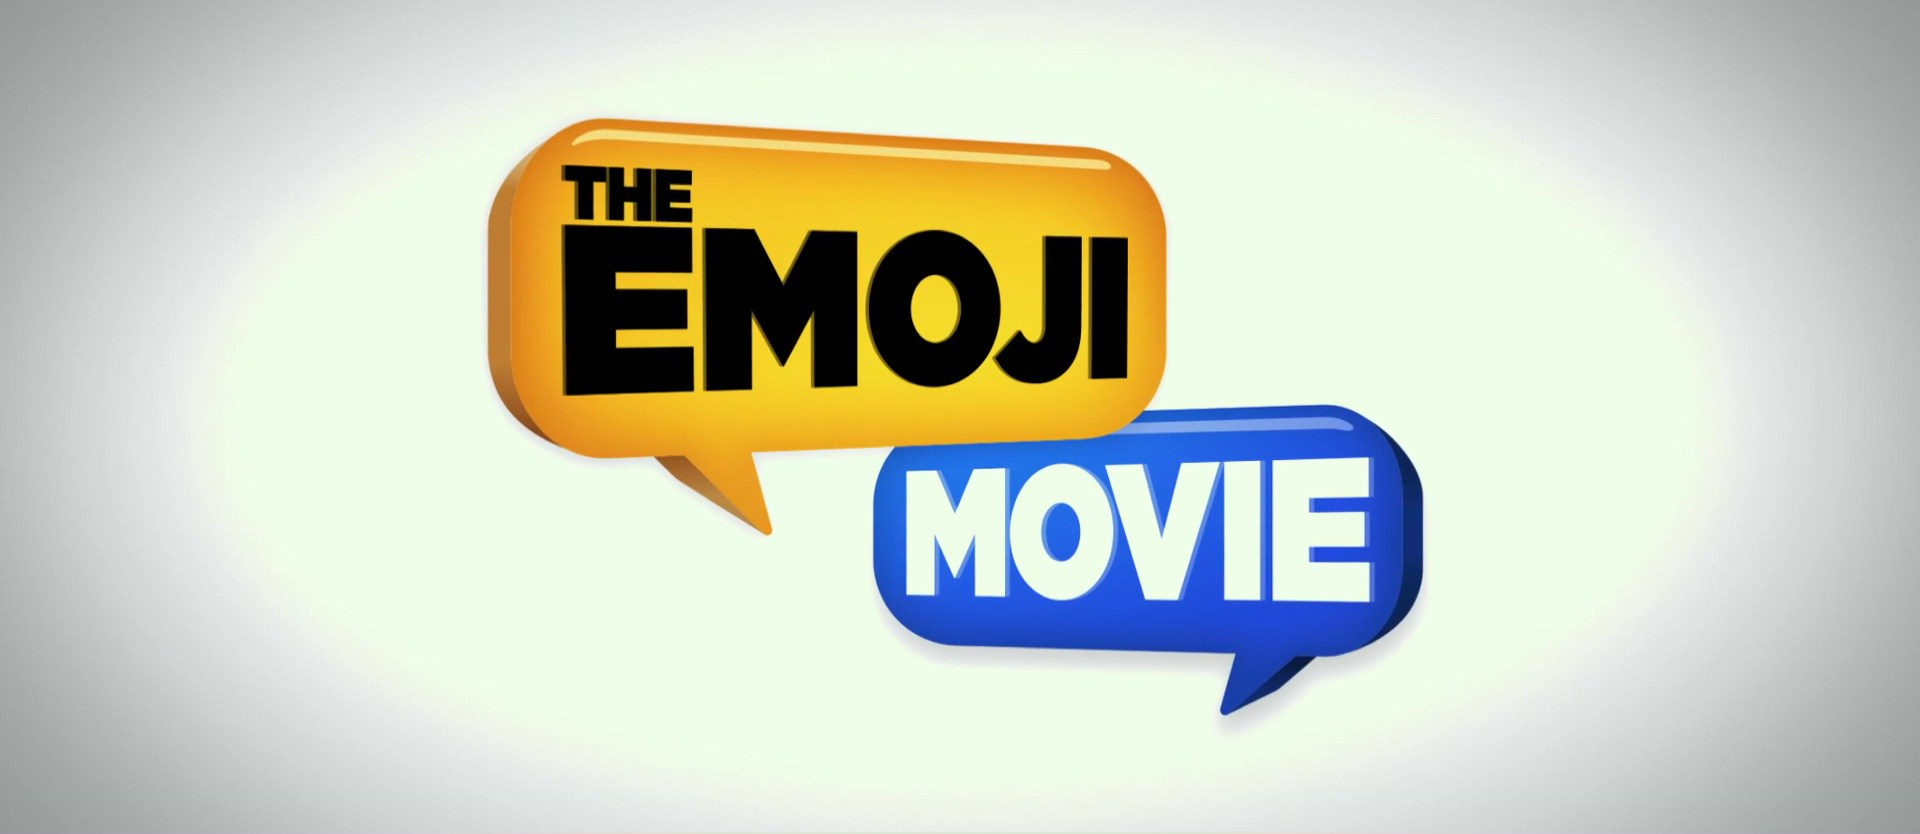 The Emoji Movie: a rant and review